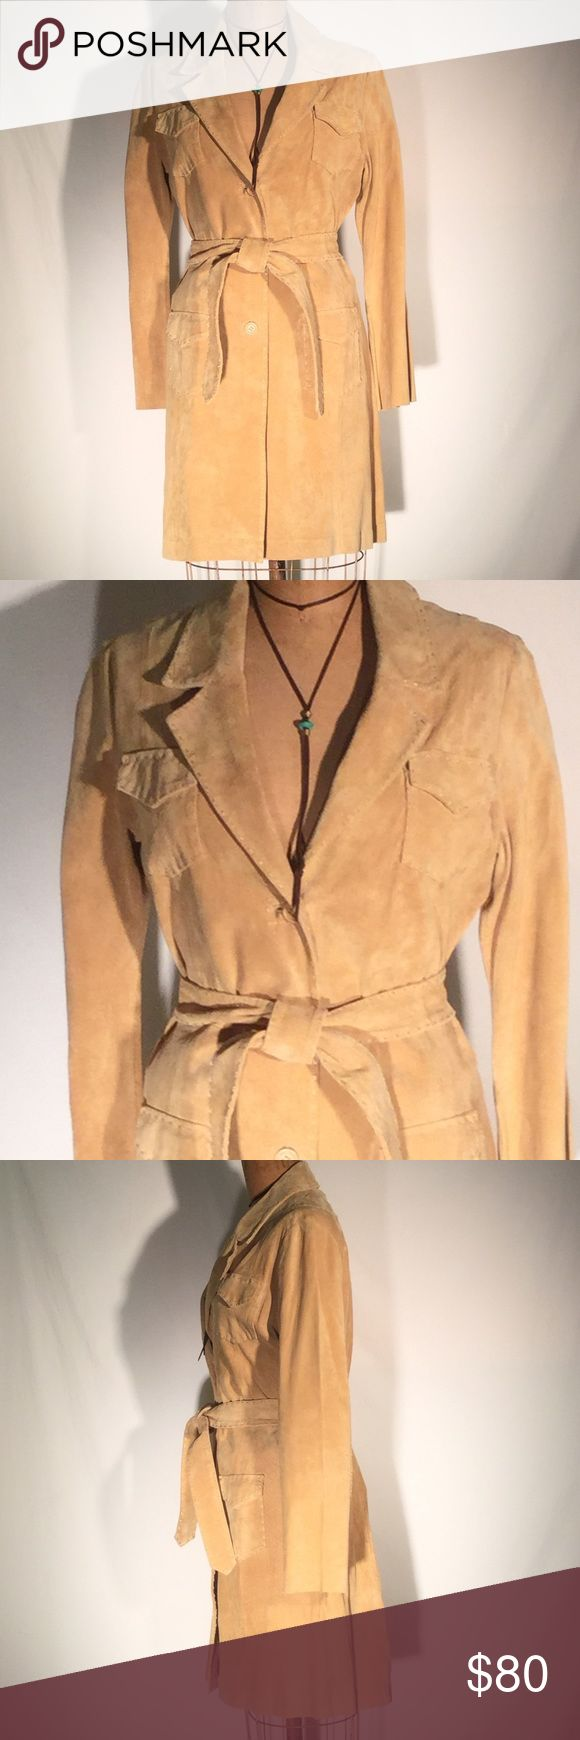 """Suzanne Somers cameltan trench coat w/stitch edges Suzanne Somers Collection camel color suede trench coat with stitched edges, 3-button front, notched collar, 2 flap/patch breast pockets & 2 flap/patch hip pockets, belted, princess seams. Unlined. 35.5"""" from top of shoulder to hemline. Size Small. 100% genuine suede leather. PM659 Suzanne Somers Jackets & Coats"""